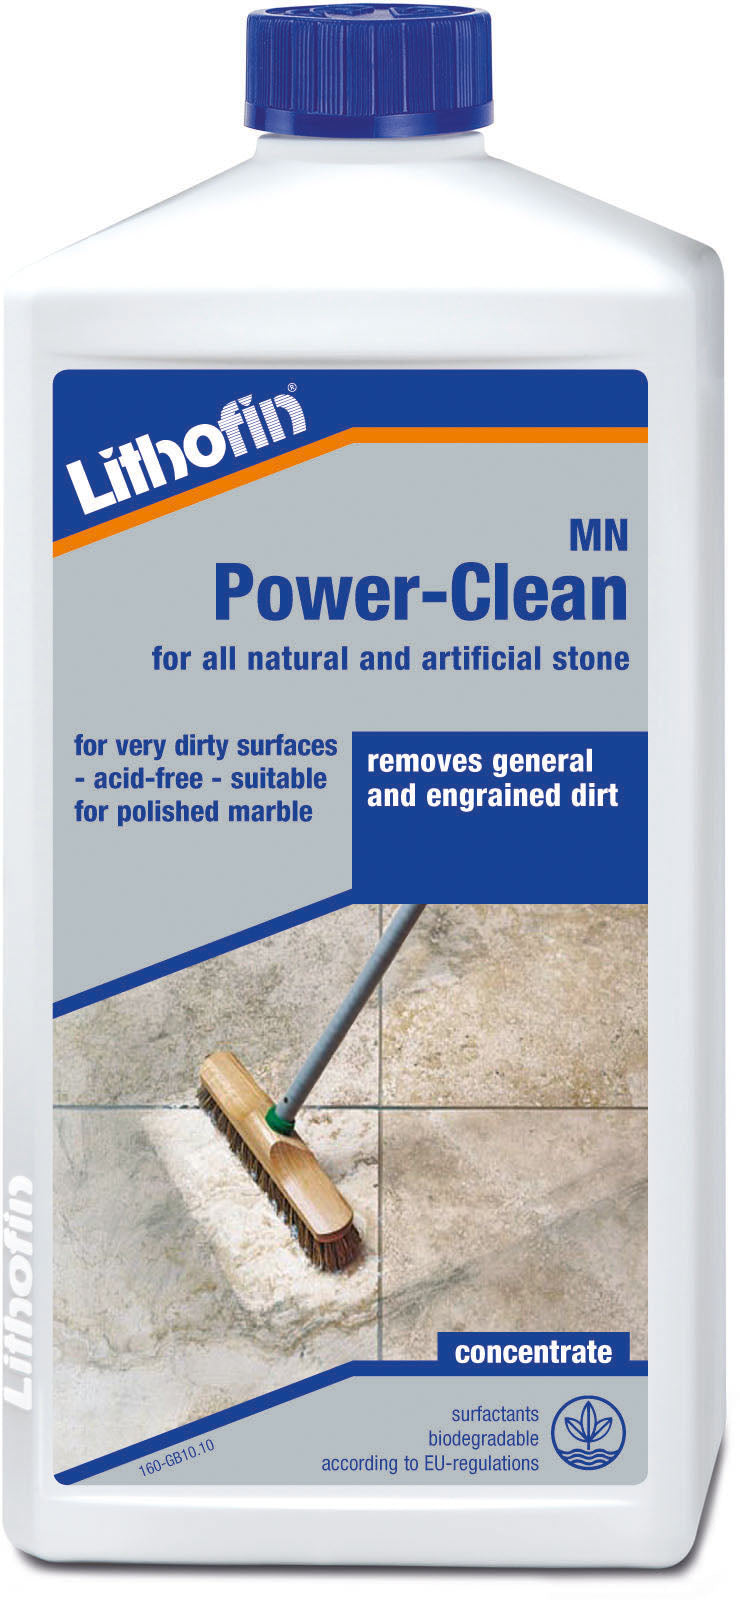 Lithofin mn power clean for all natural and artificial surfaces